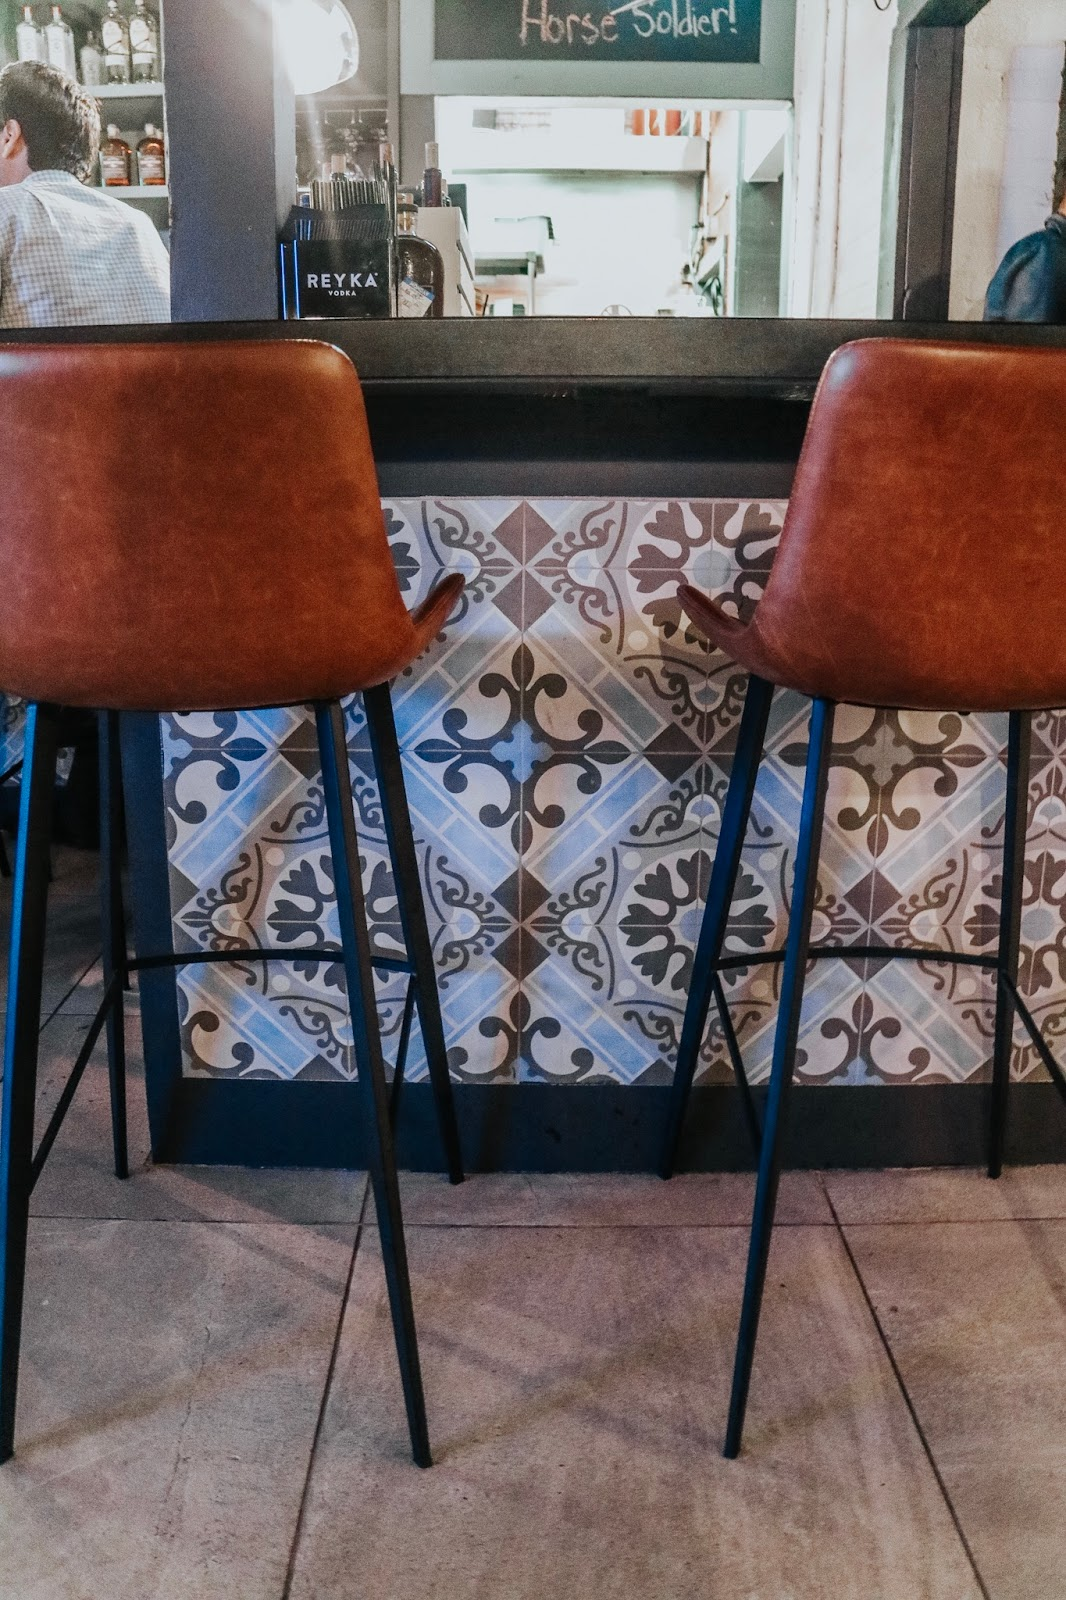 Bar stools and tiled bar decor at boca in Tampa Florida